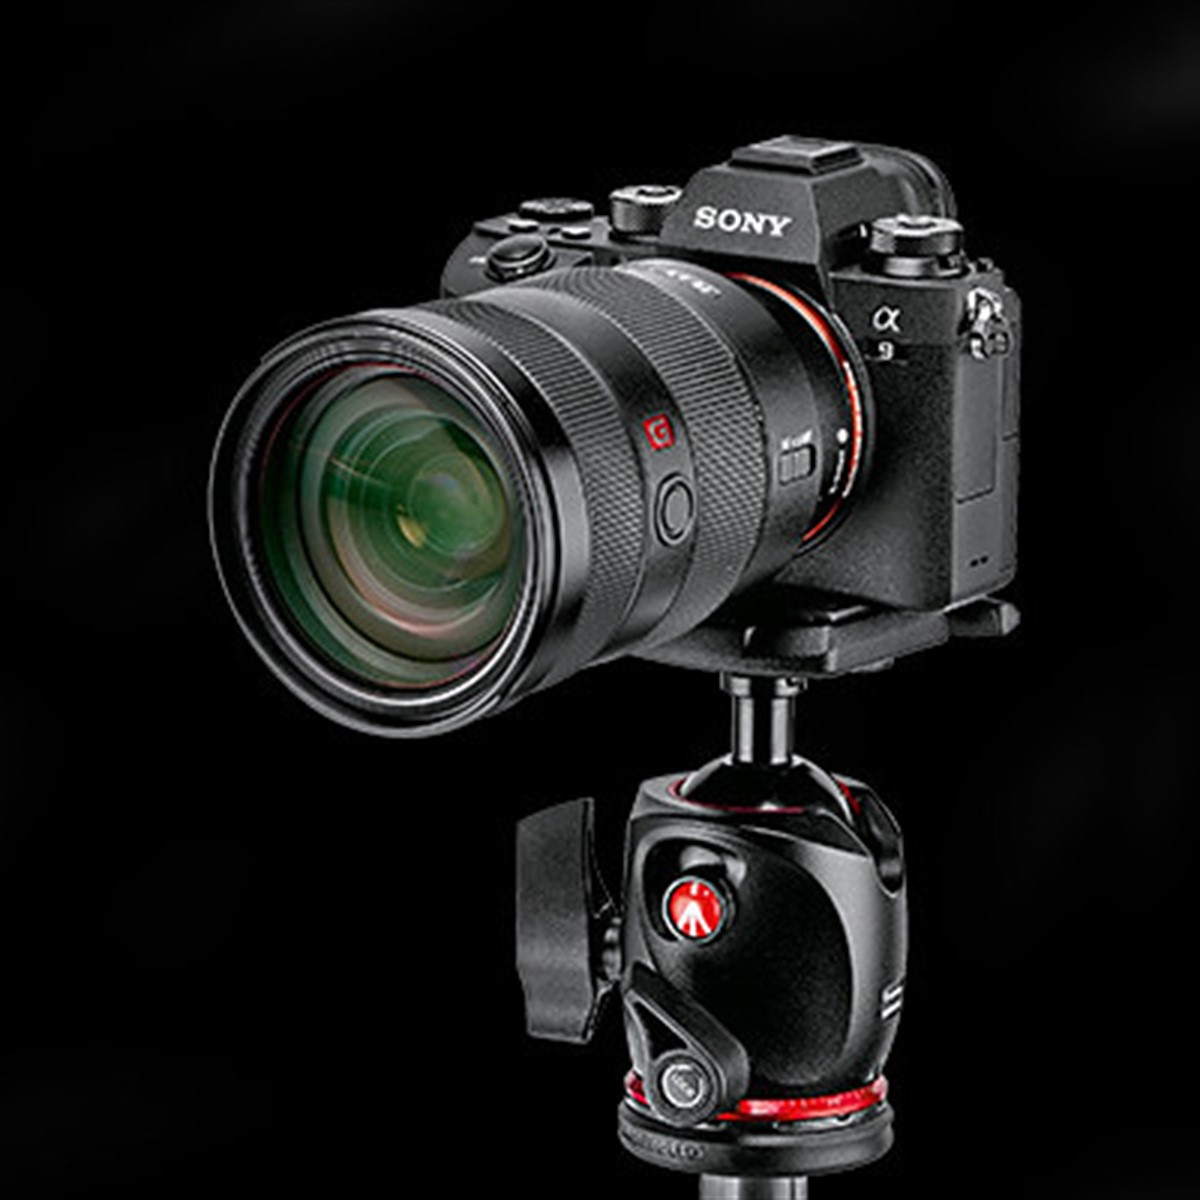 Manfrotto Is Teaming Up With Sony To Make Accessories For Alpha L Plate Bracket Kamera A7 A7s A7r Series Cameras Digital Photography Review